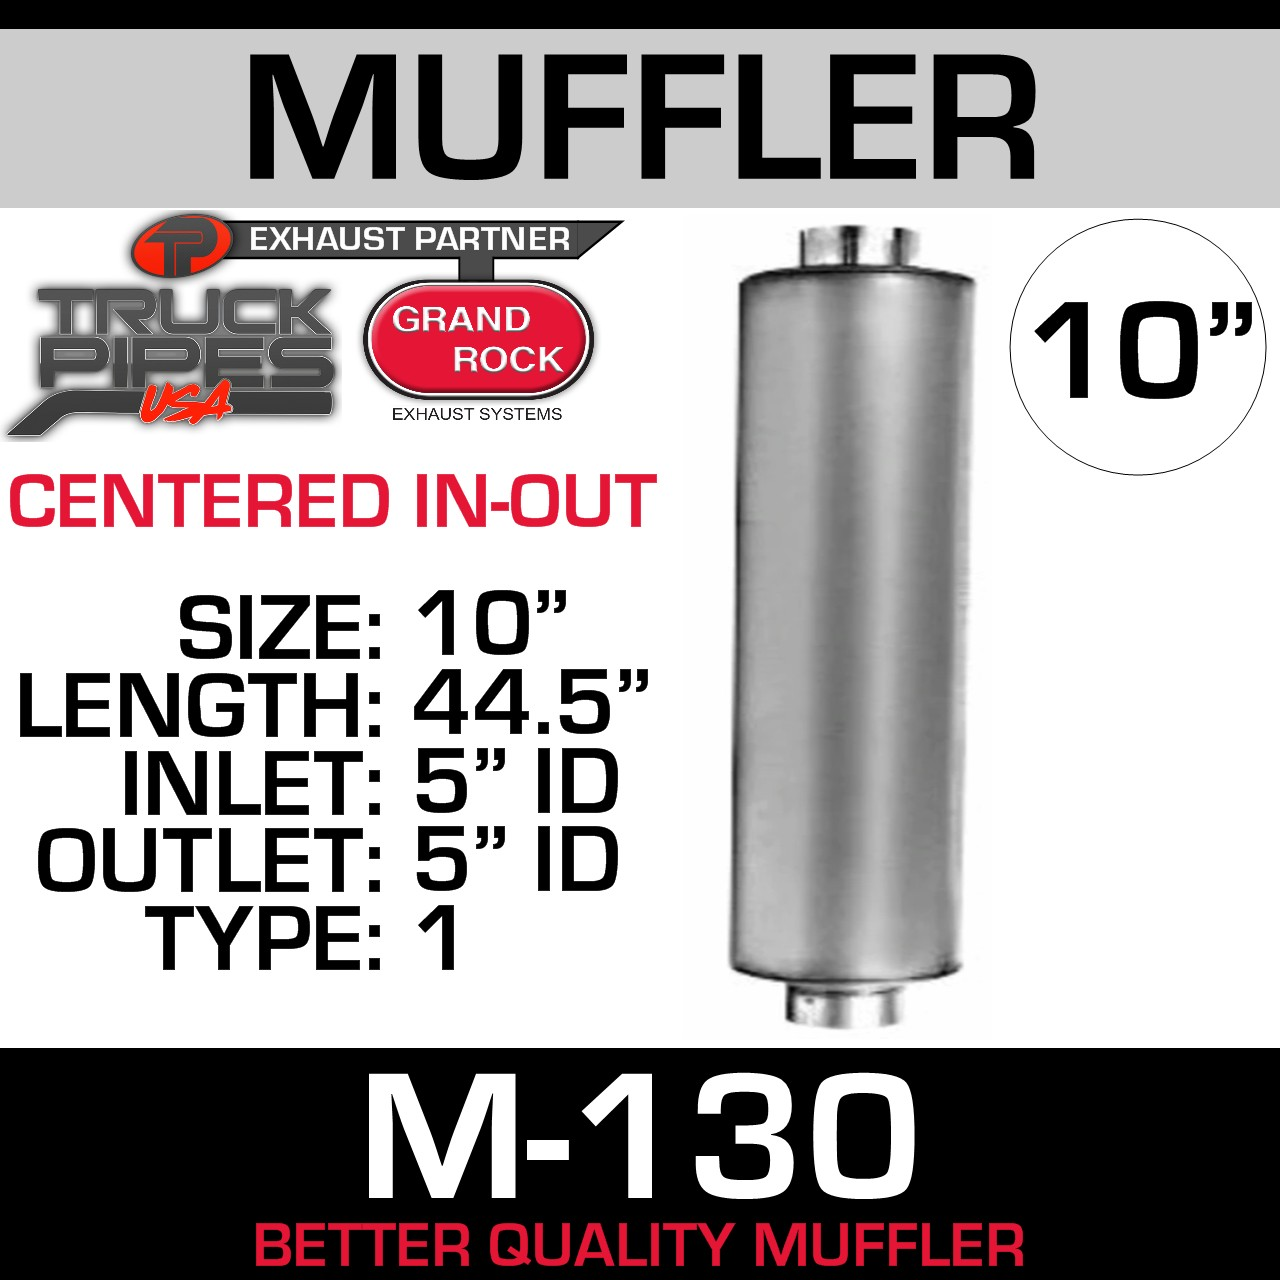 m-130-muffler-exhaust-grand-rock.jpg